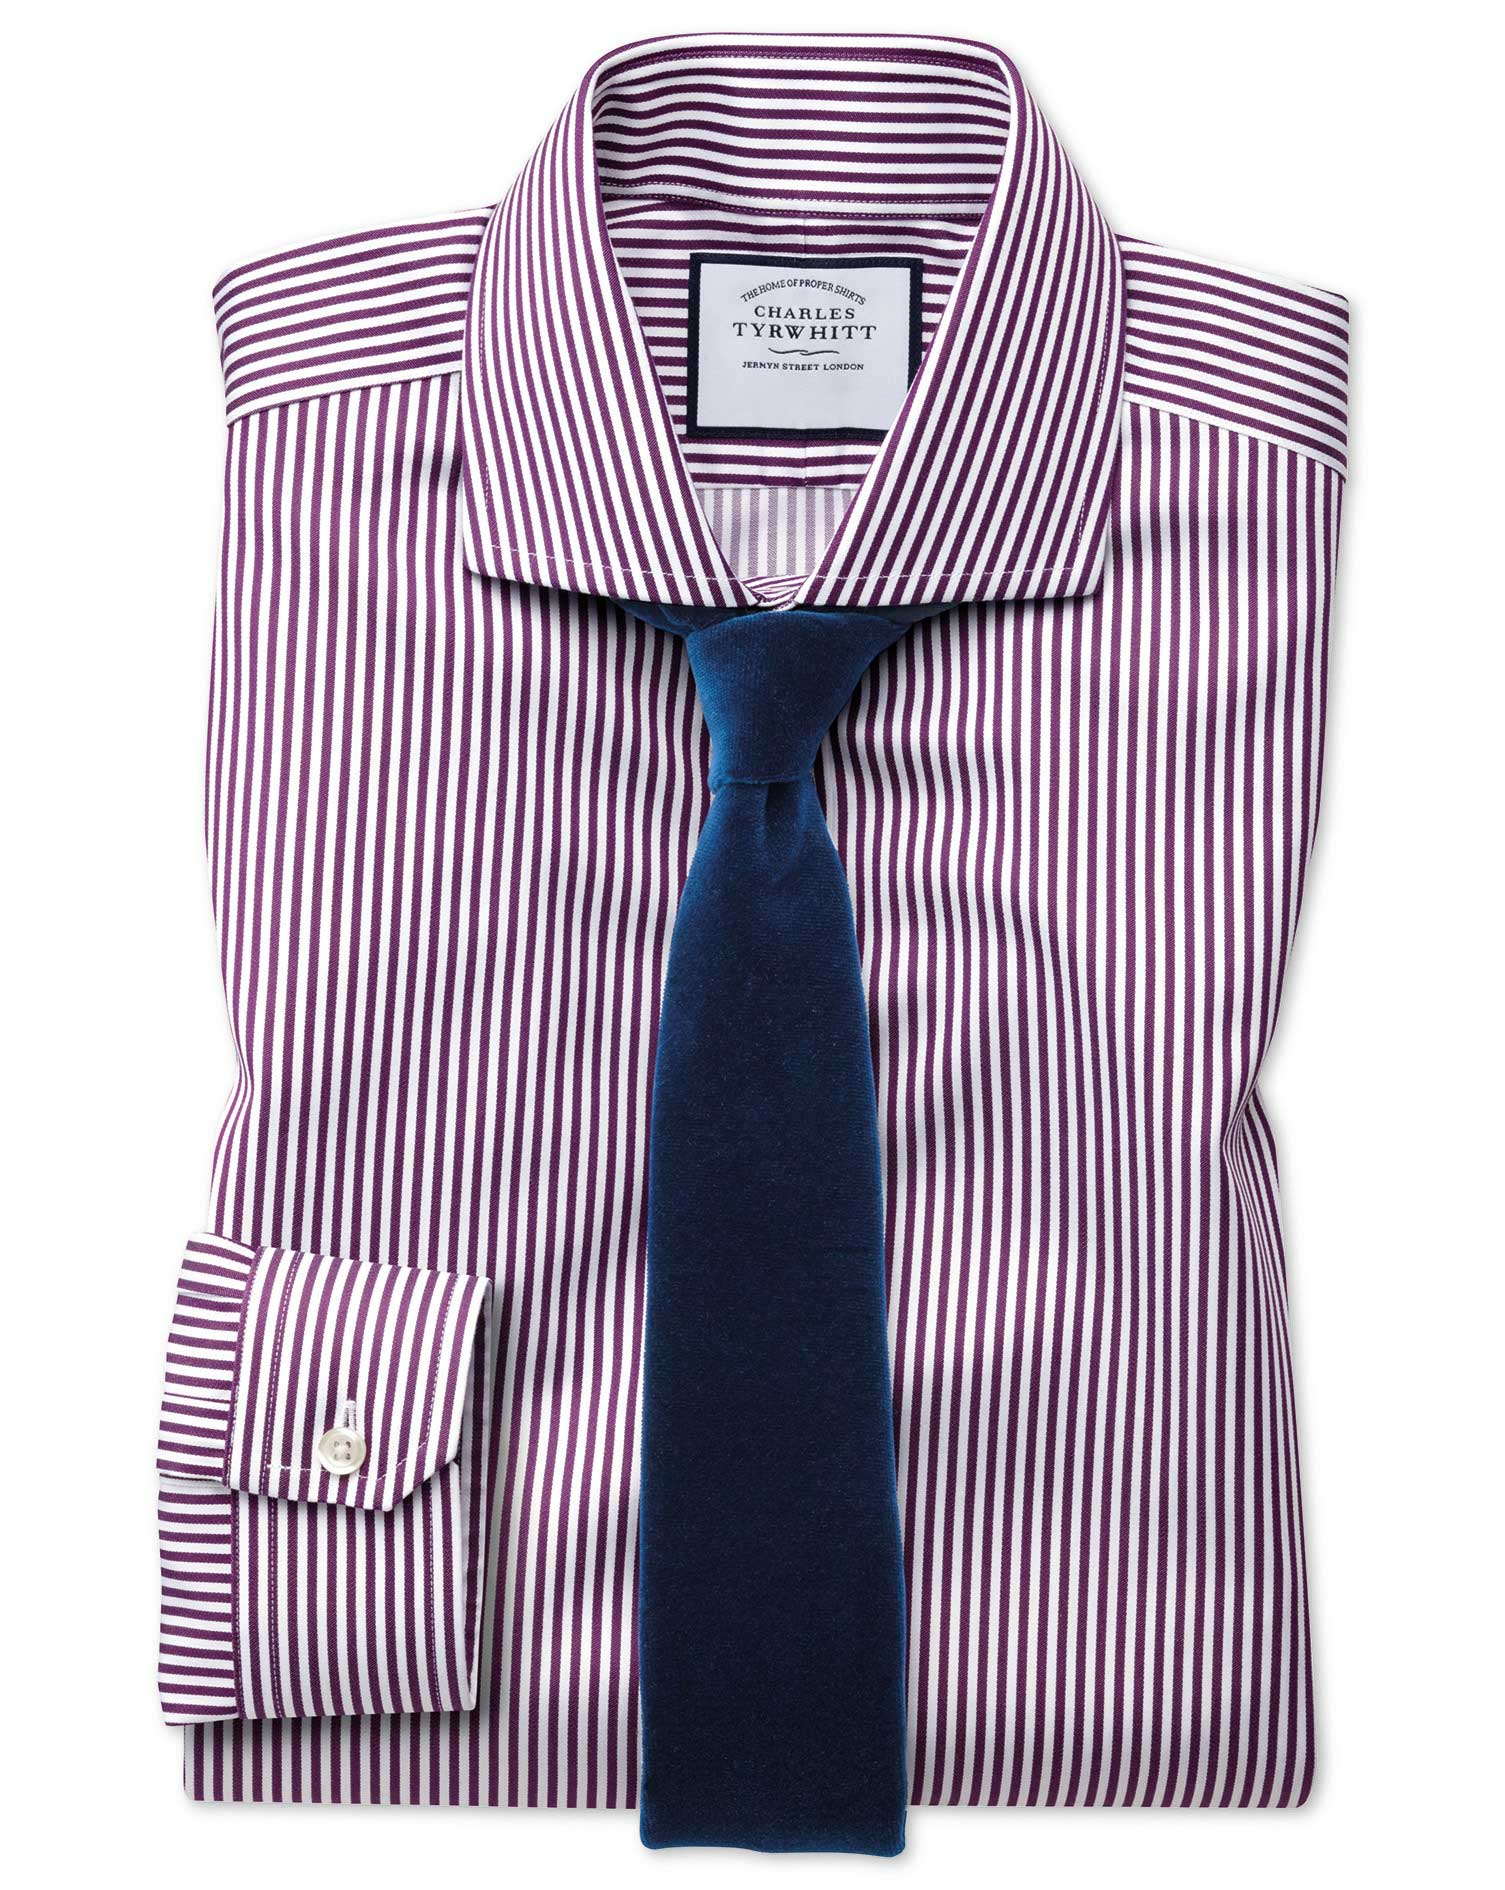 Super Slim Fit Non-Iron Cutaway Collar Berry Twill Stripe Cotton Formal Shirt Single Cuff Size 16.5/